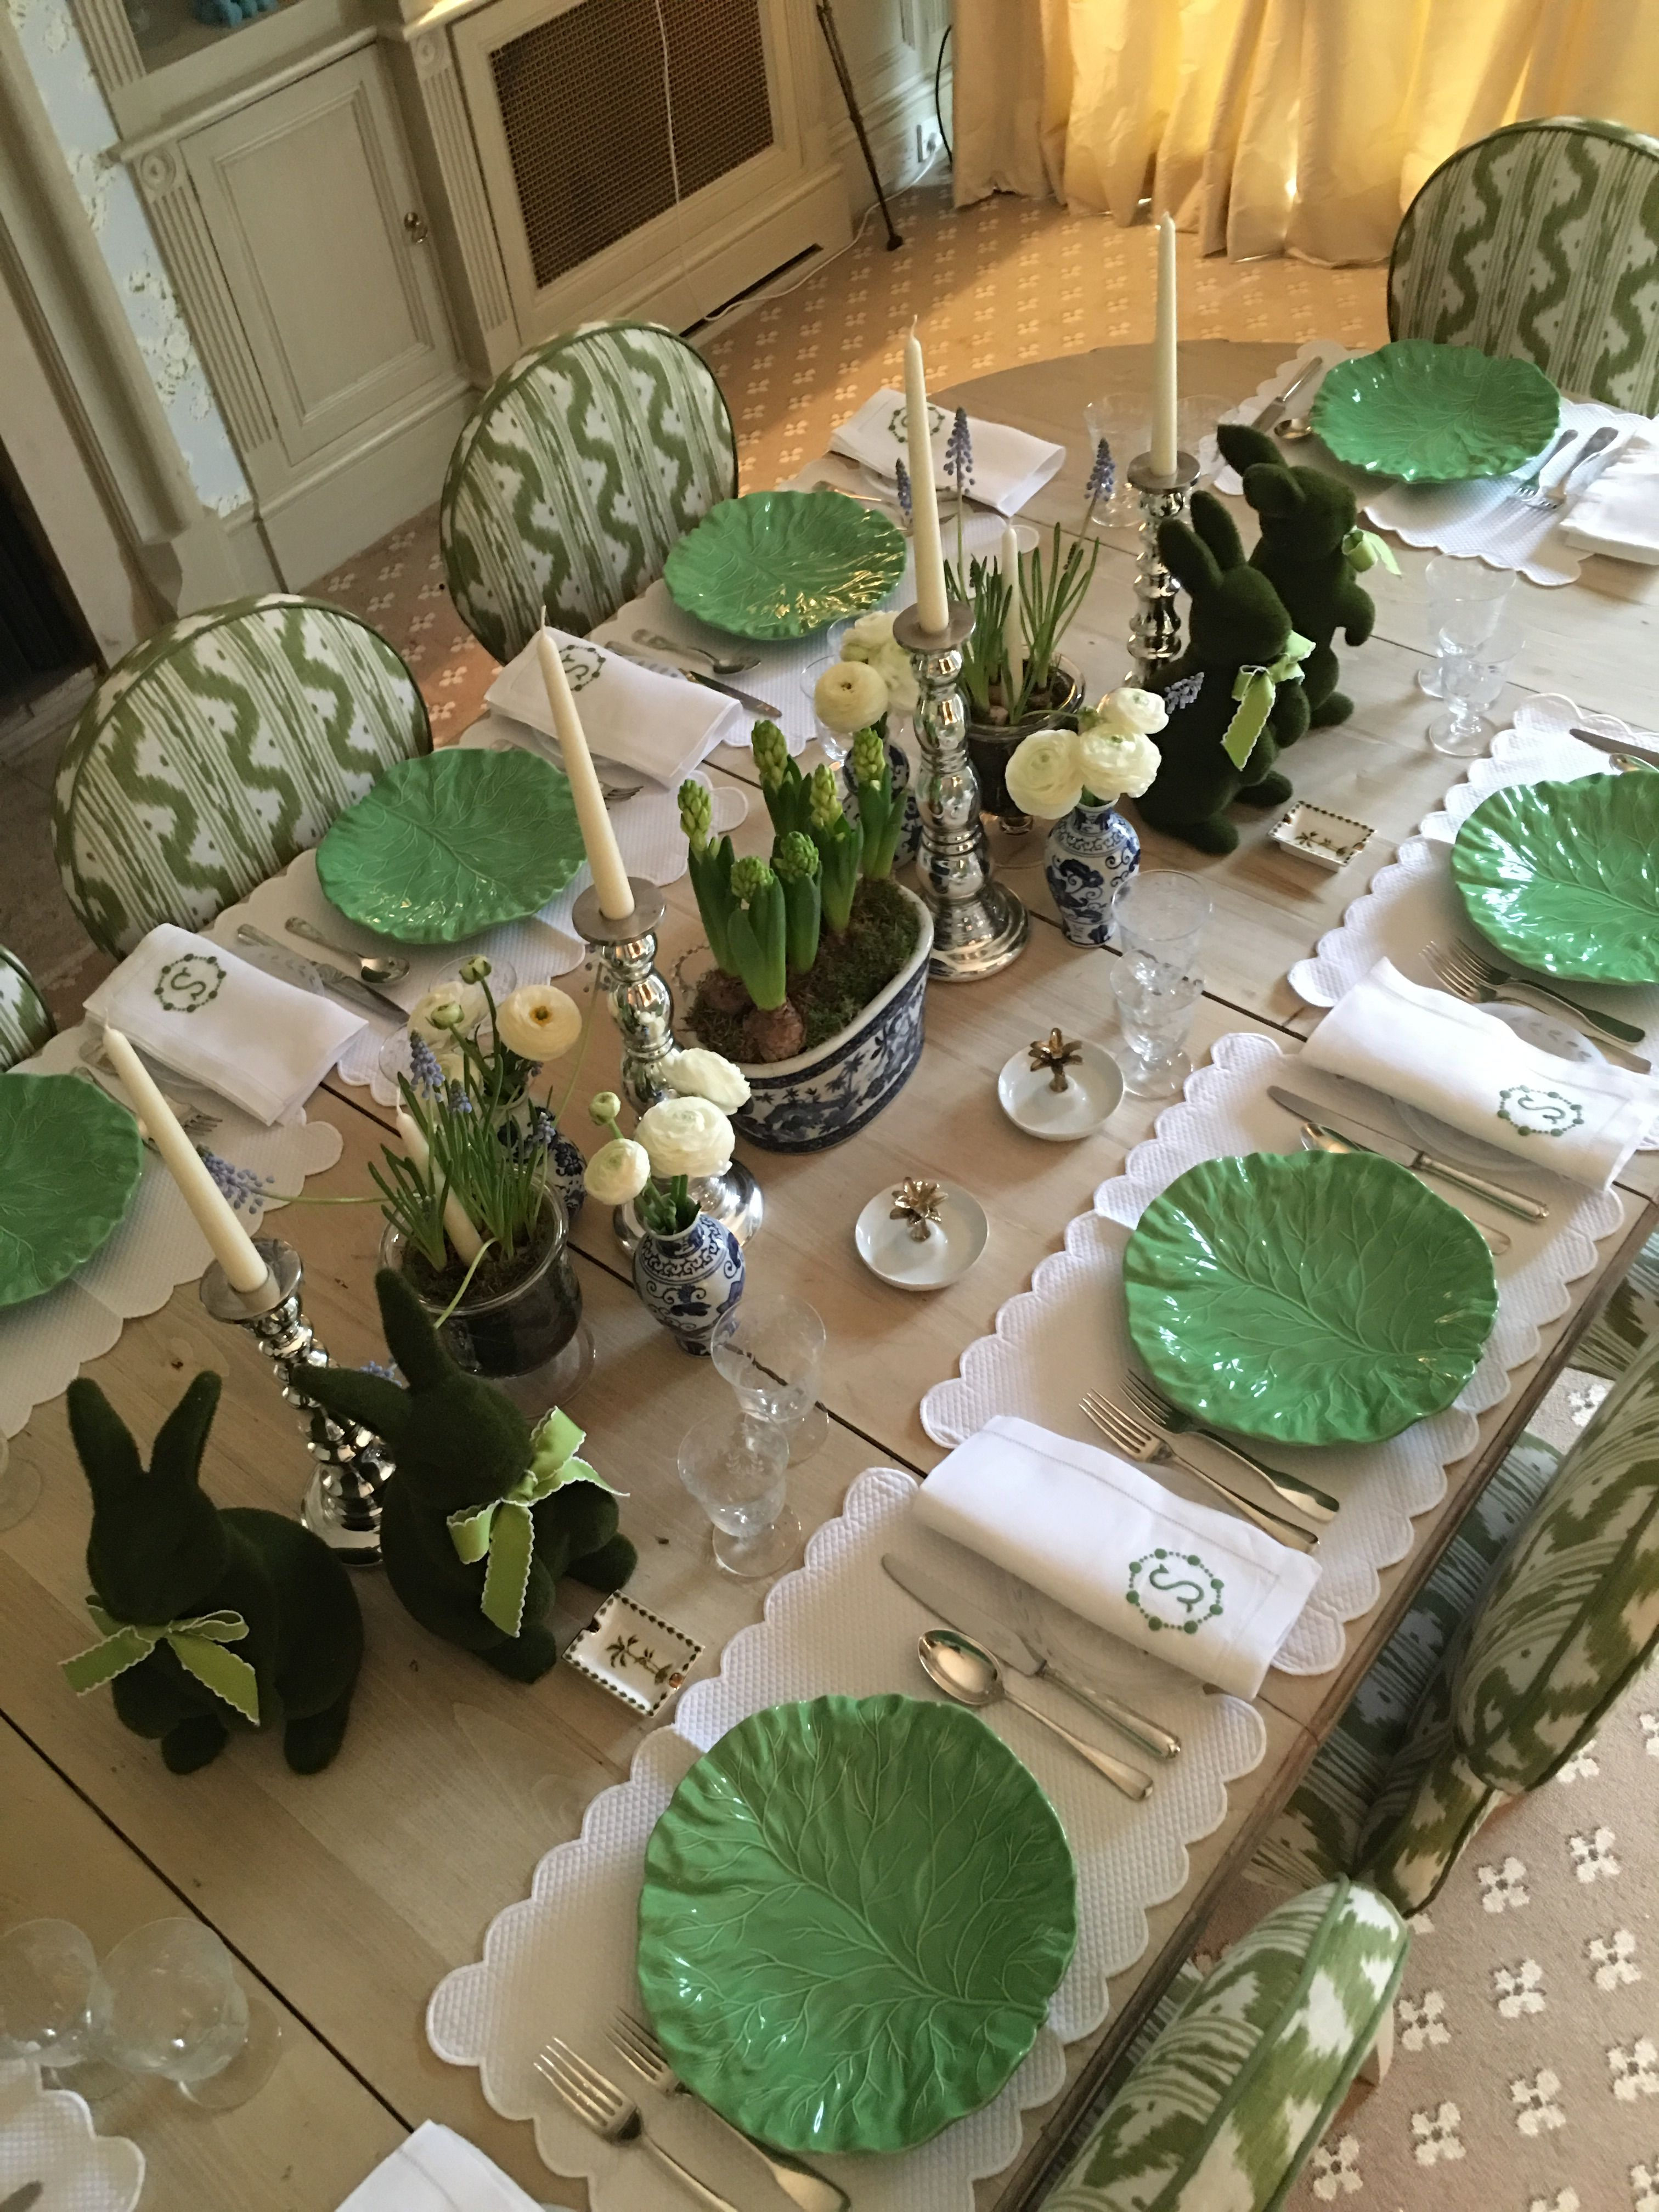 Deco Table Jardin Lettuce Ware Table Tablescapes Pinterest Table Deco Table